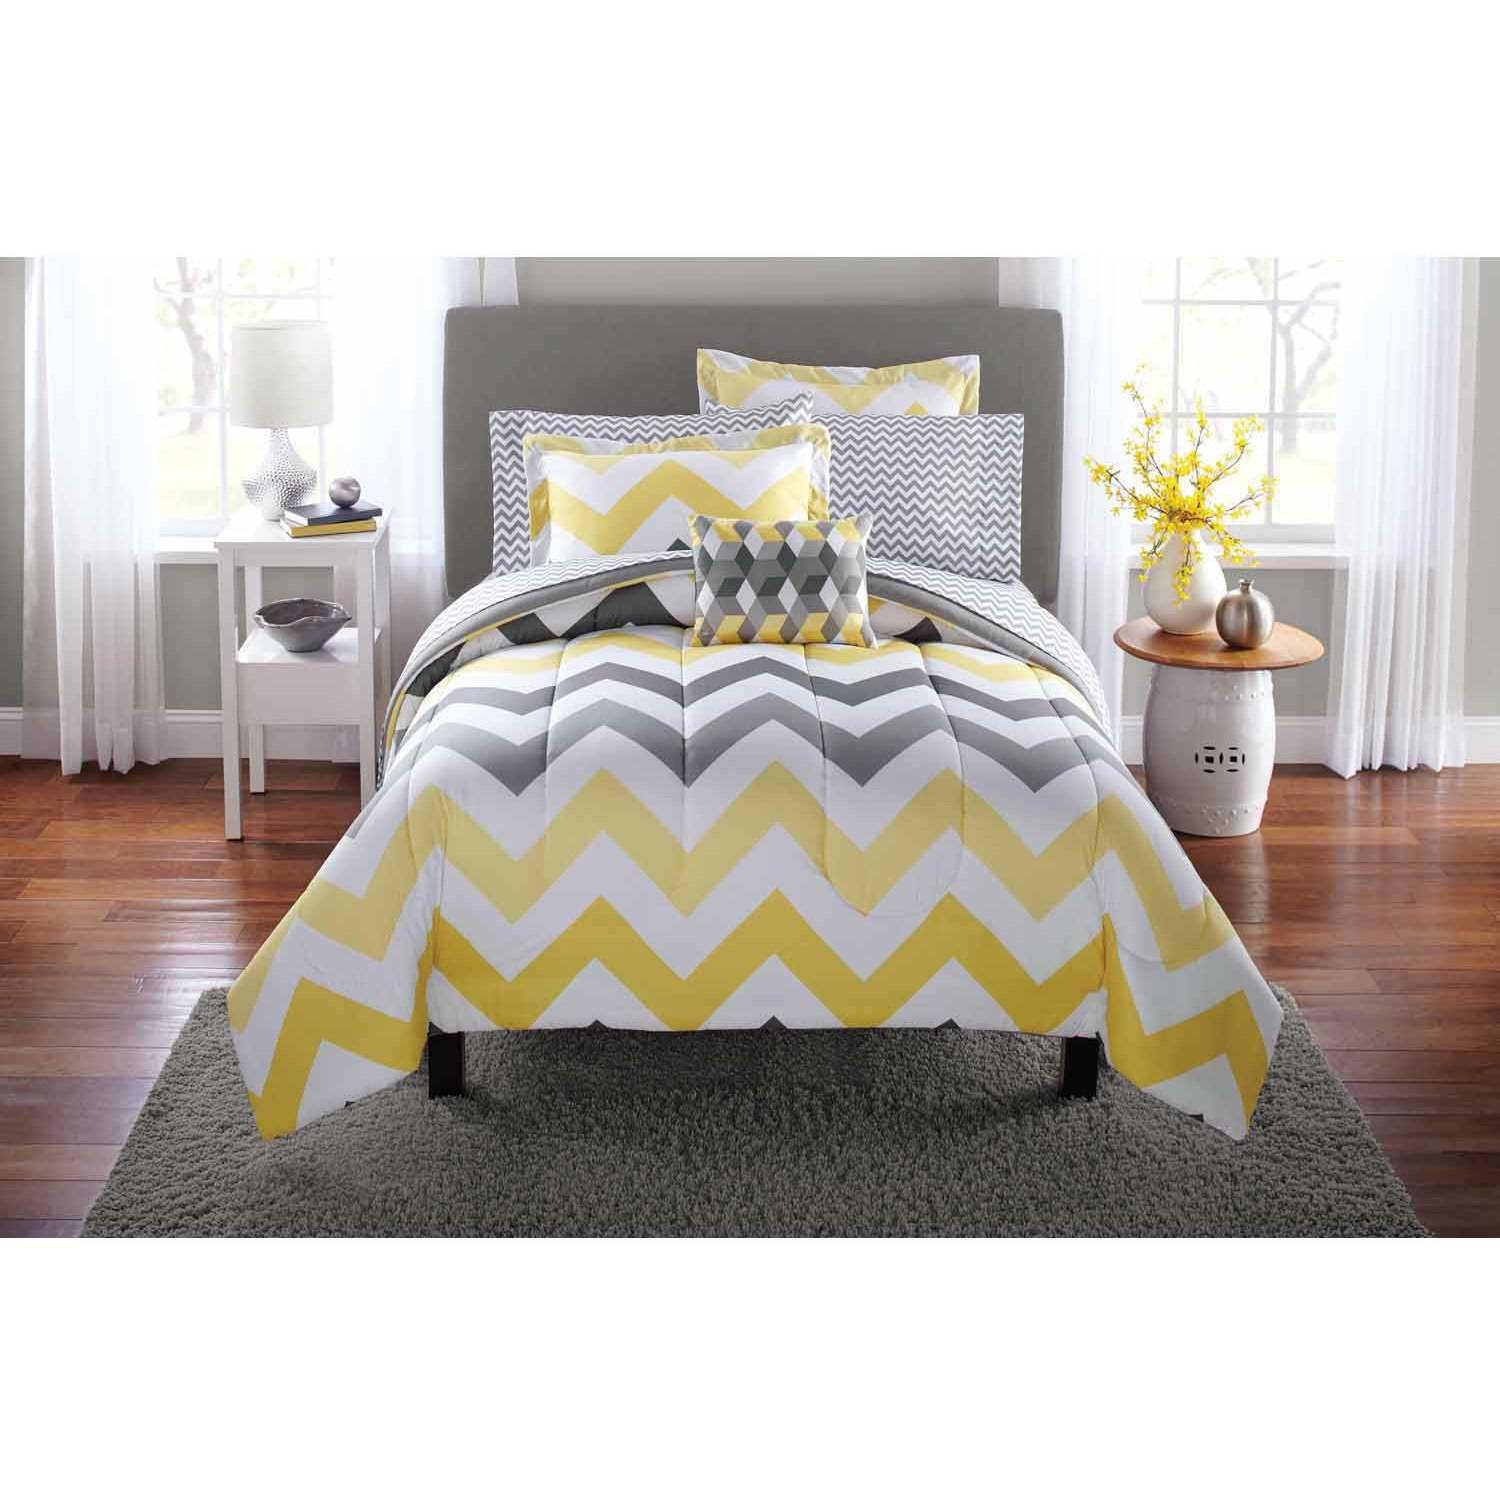 bedding queen for best gray bed grey baby bedroom home sets the and sweet yellow